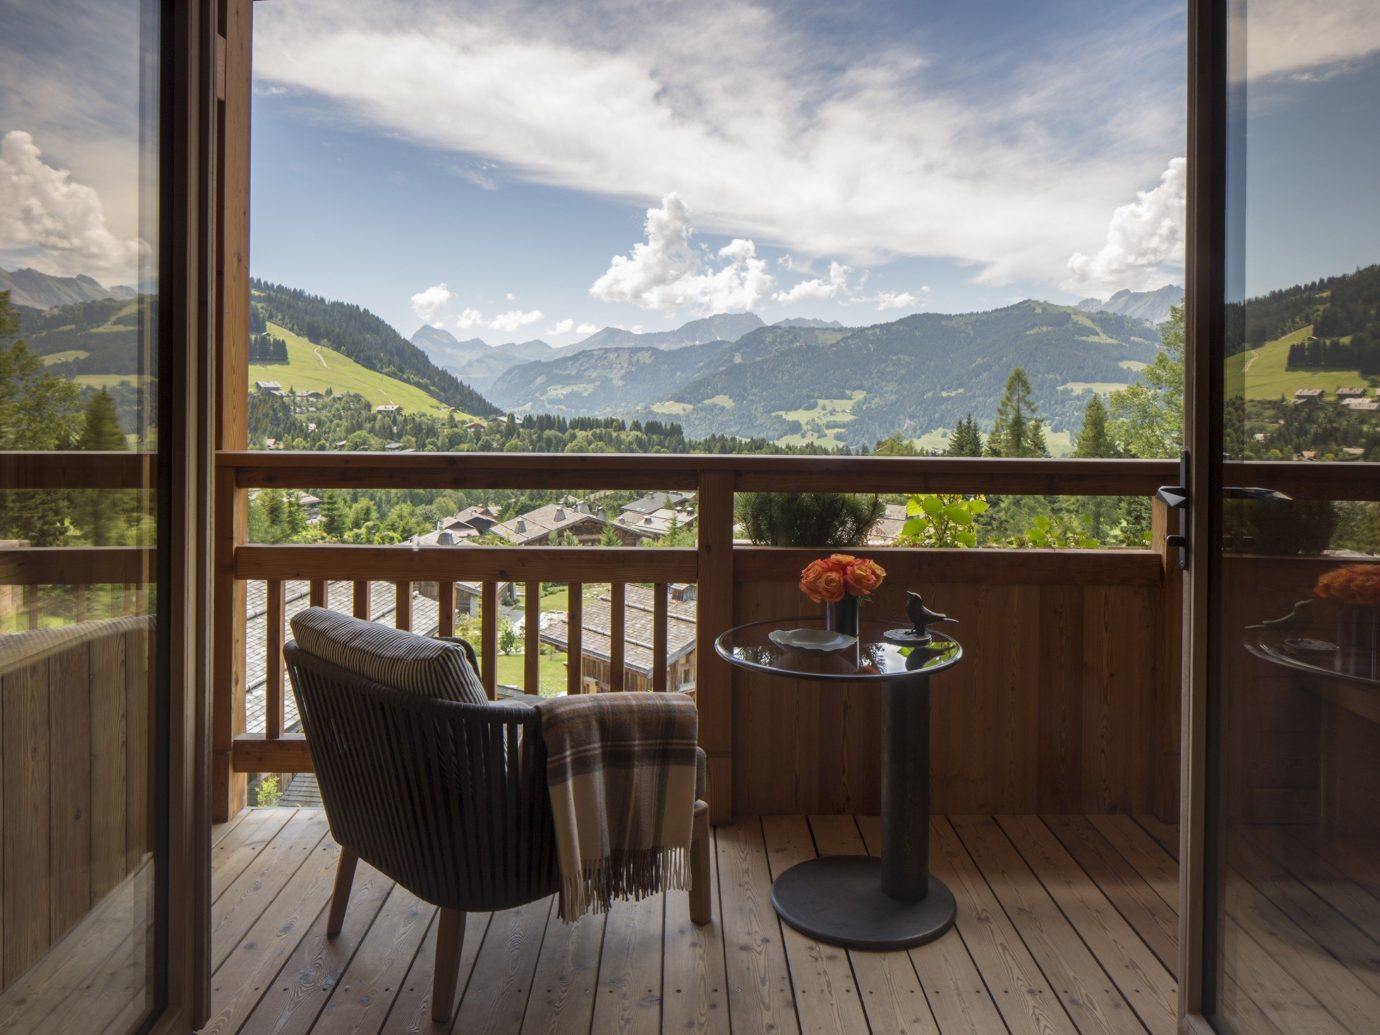 Boutique Hotels Hotels Outdoors + Adventure Winter window sky mountain property real estate home apartment Balcony house estate interior design tree penthouse apartment overlooking day